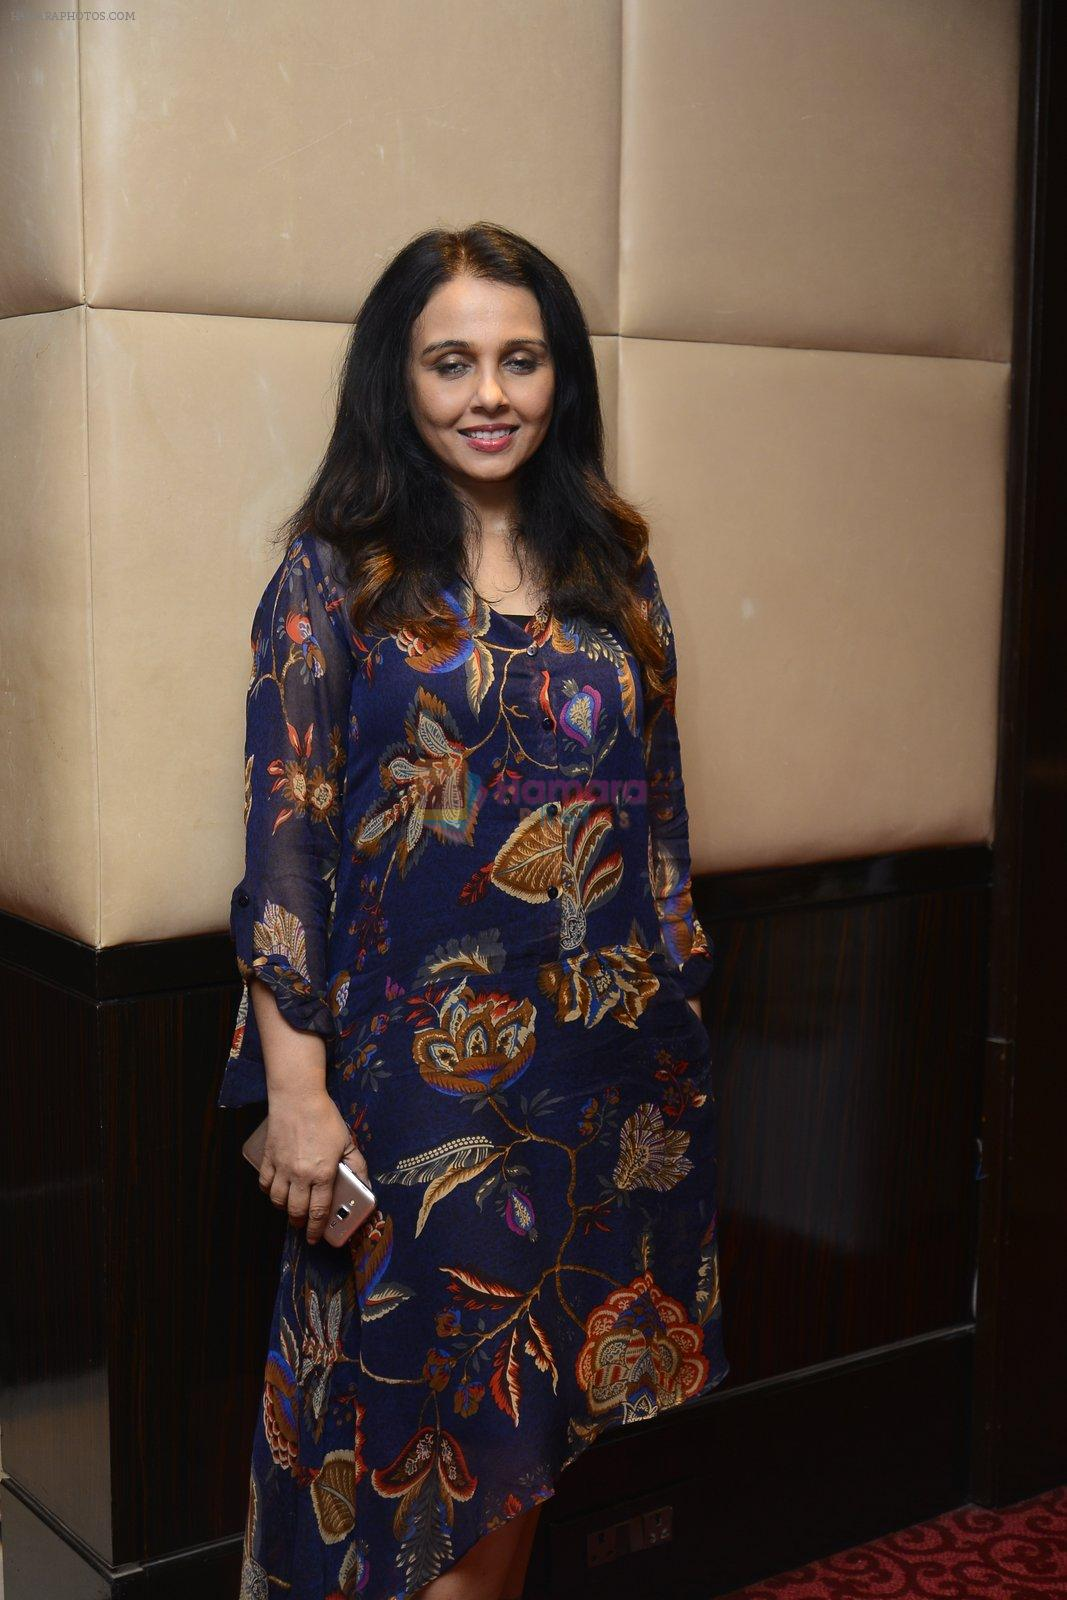 Suchitra Krishnamurthy at Jason Byrne stand up comedian's premiere show on 15th Sept 2016